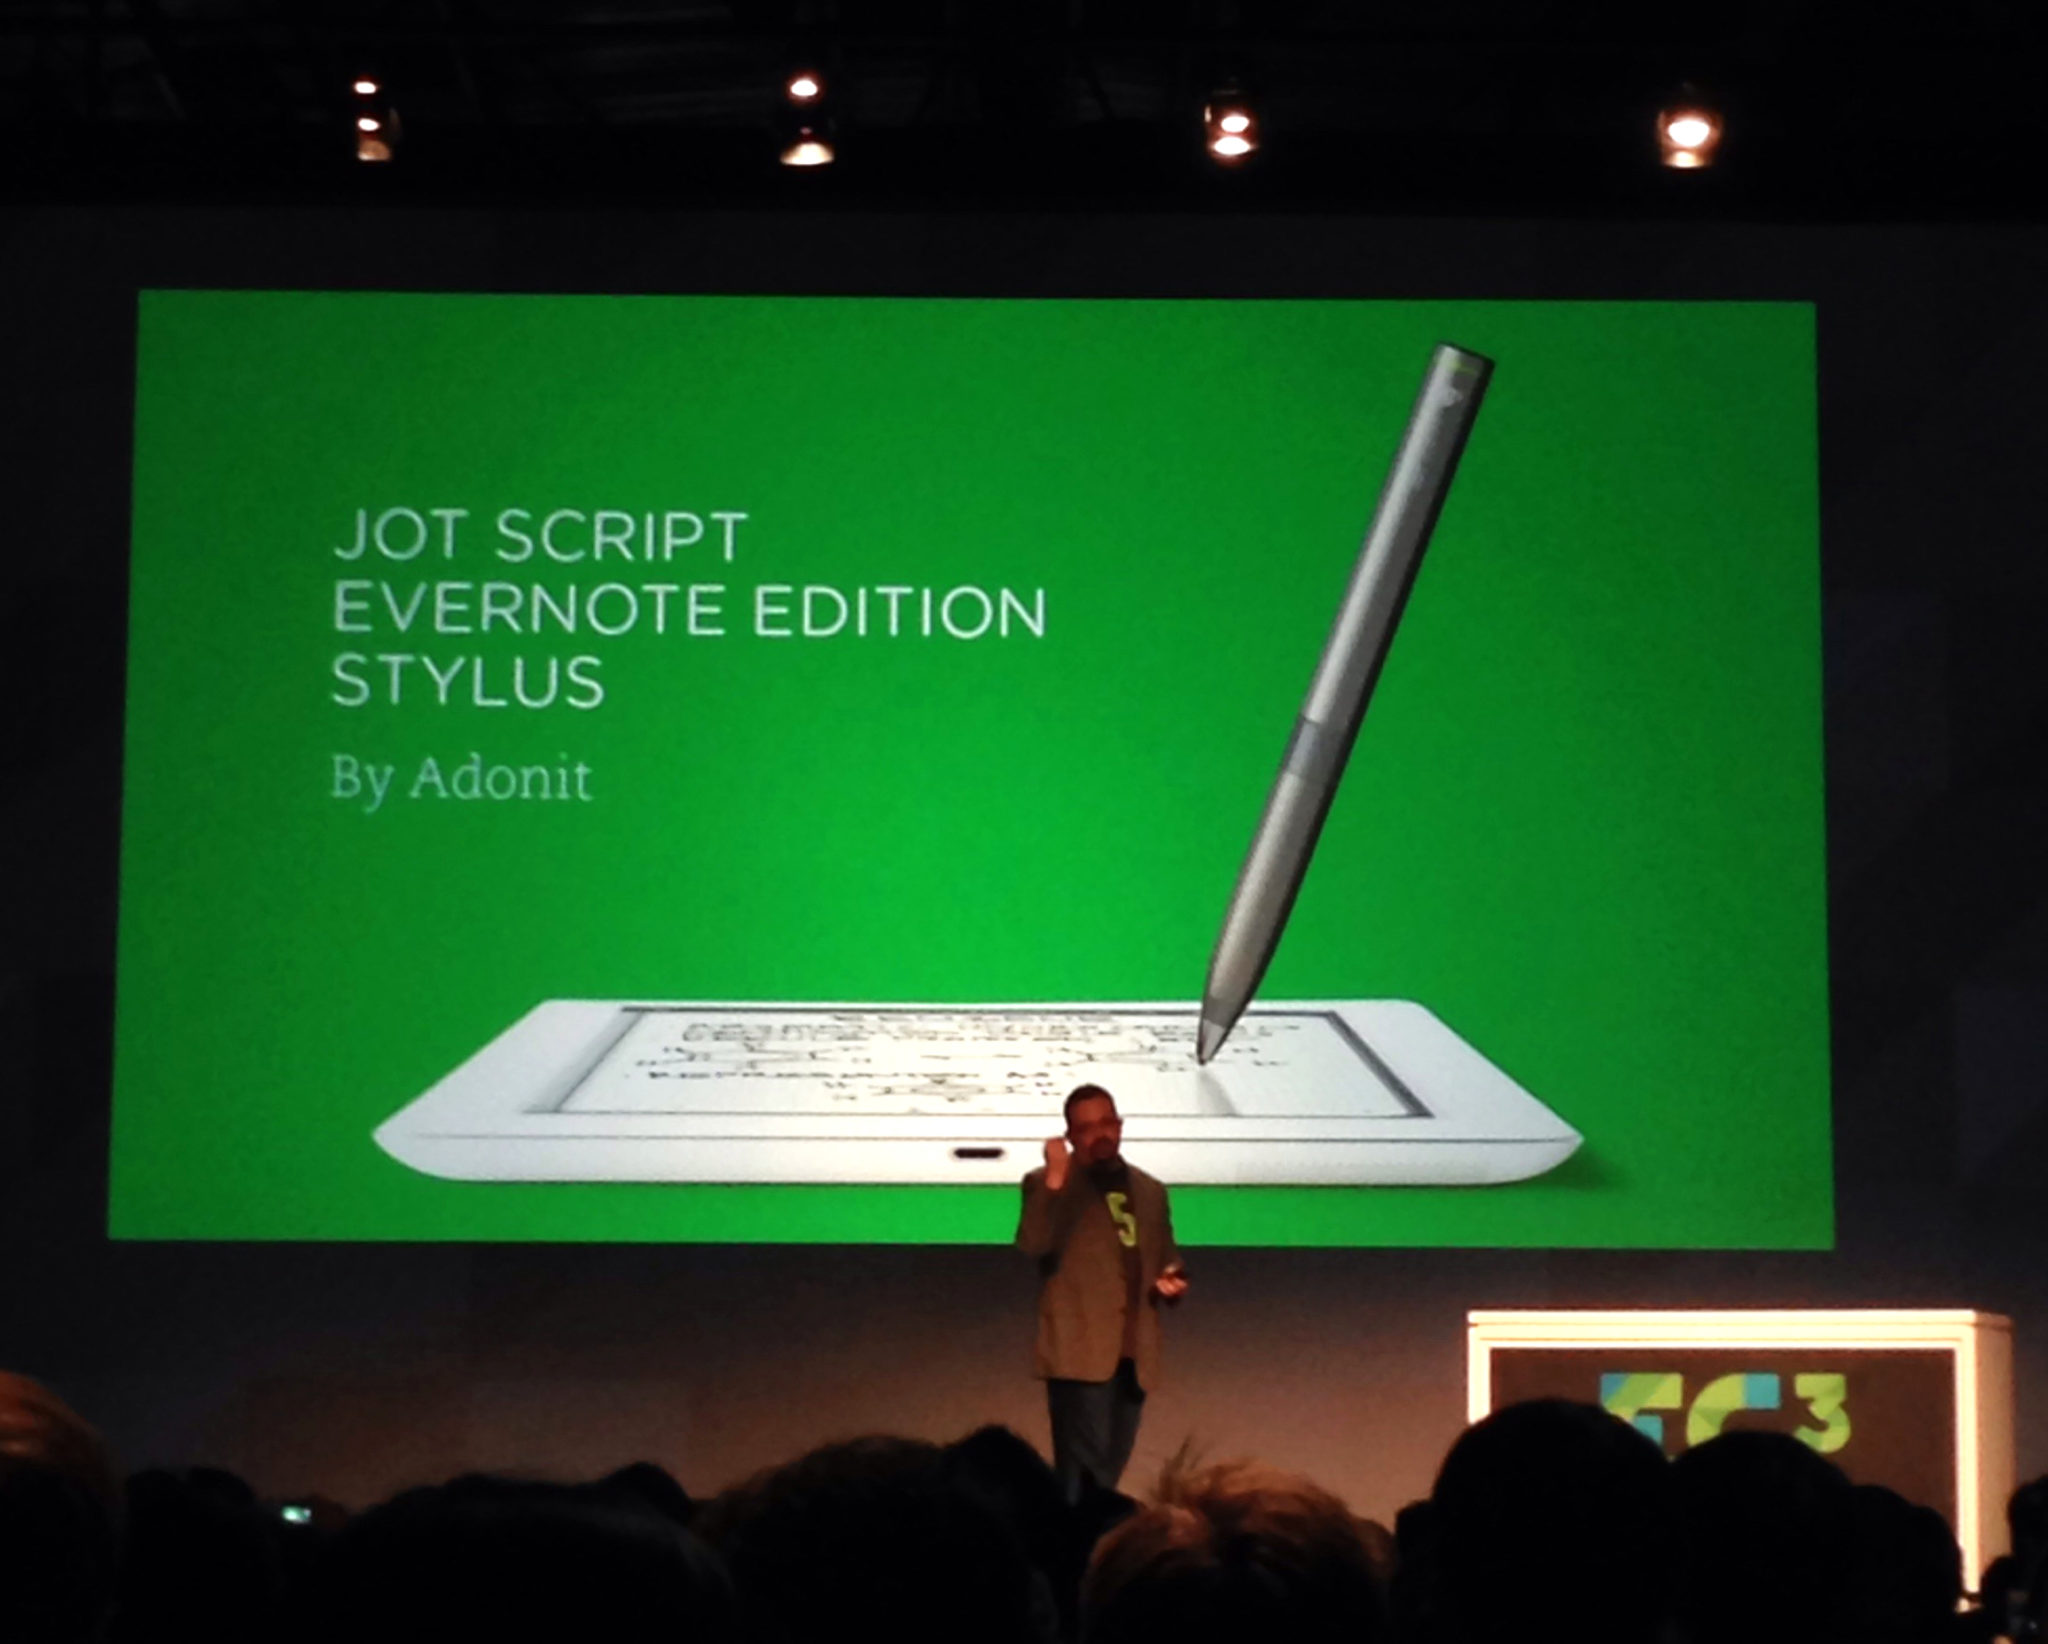 Evernote Edition of the Adonit Stylus